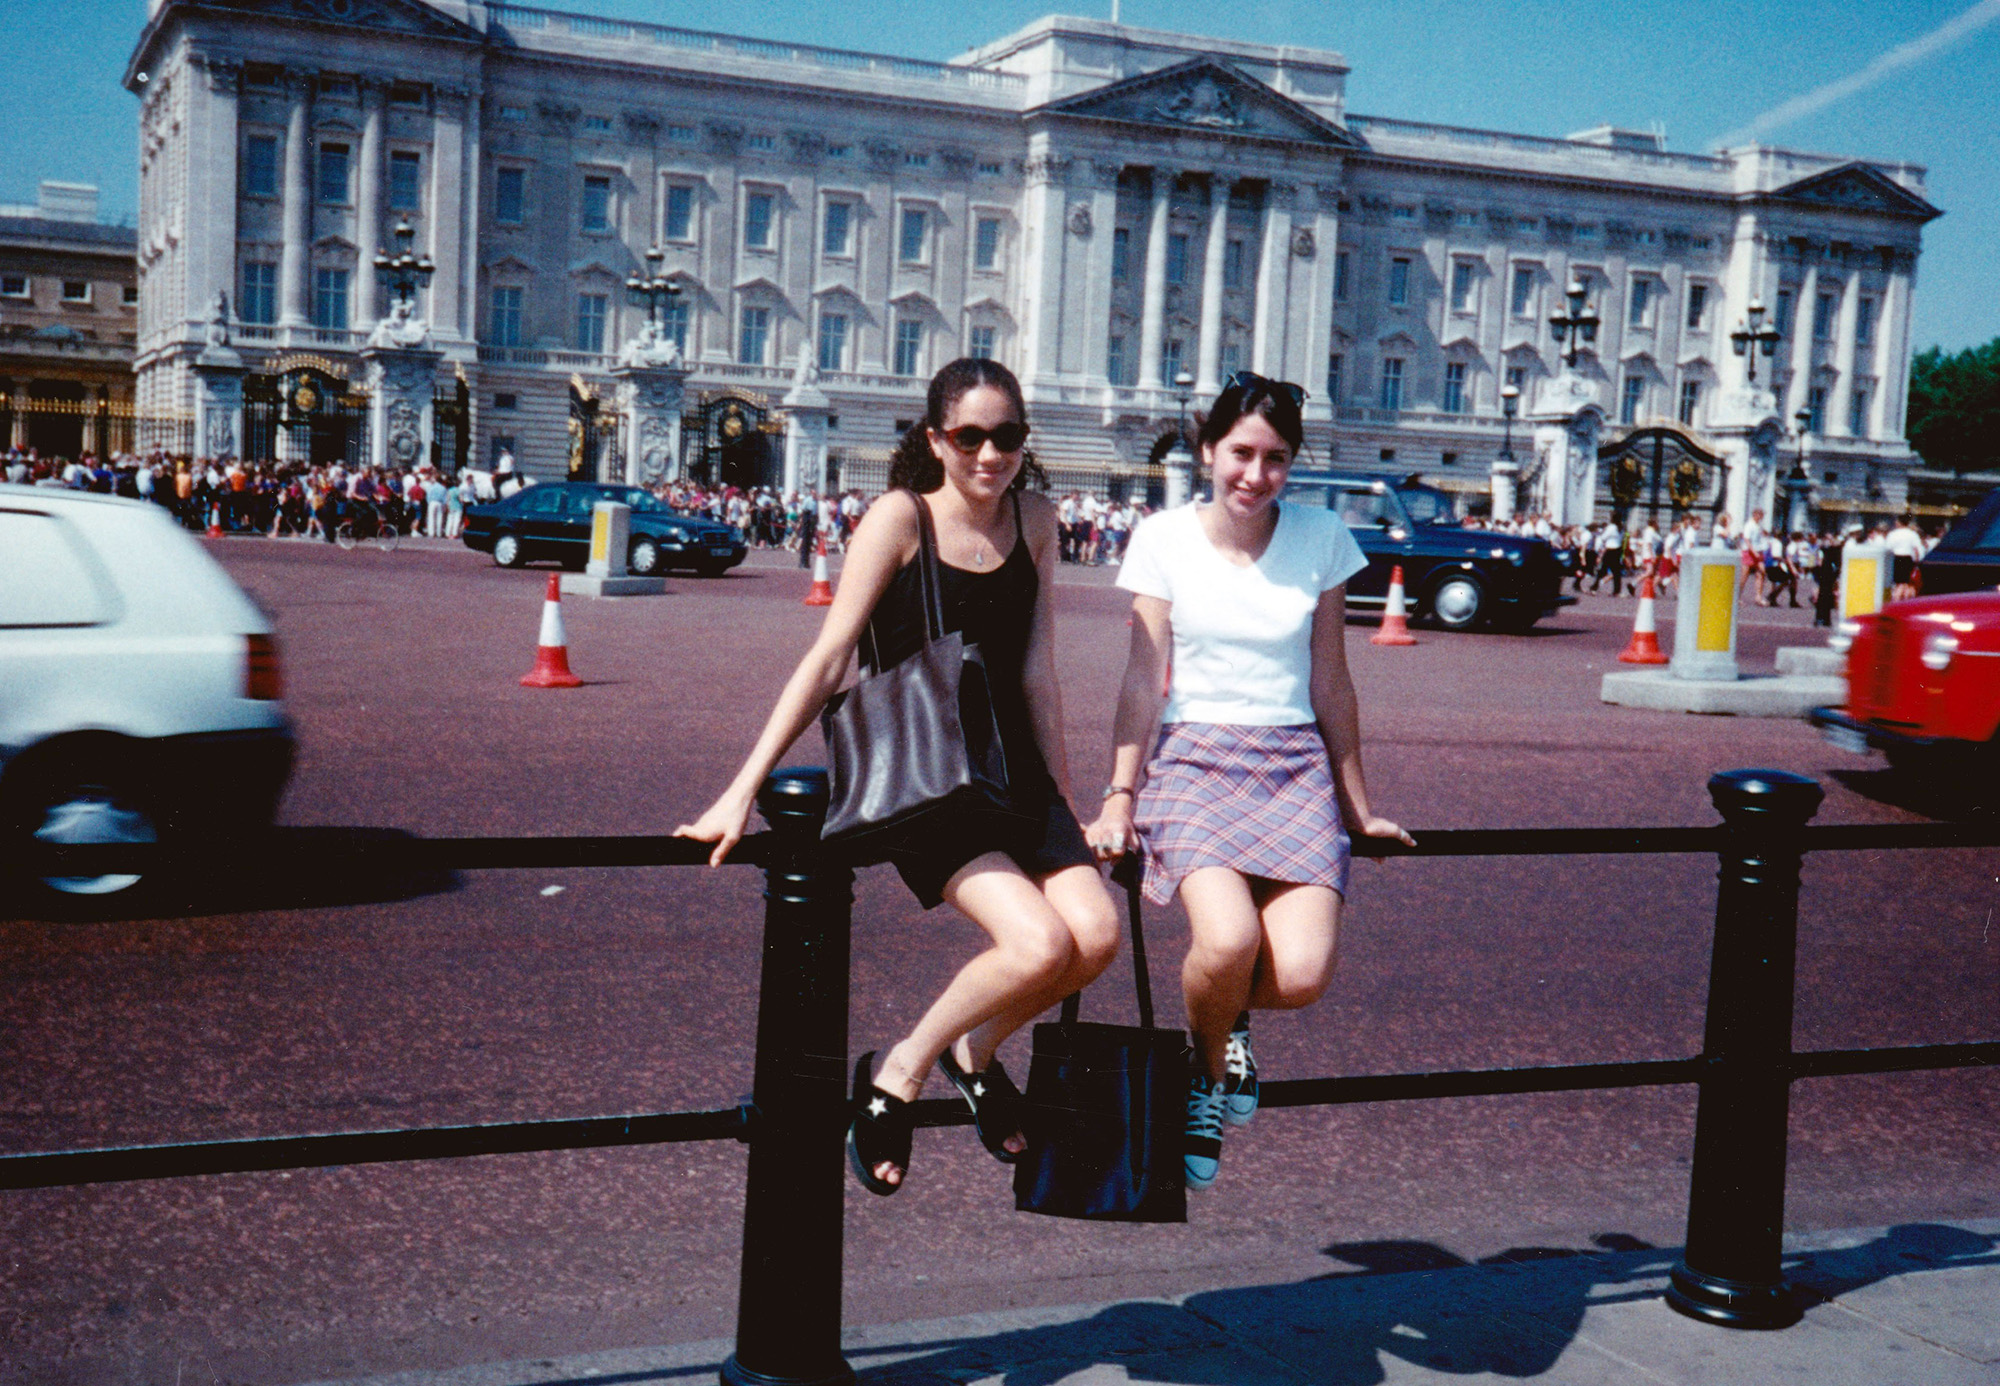 Photo of 15-Year-Old Meghan Markle Outside Buckingham Palace Is Proof Fairy Tales Do Come True